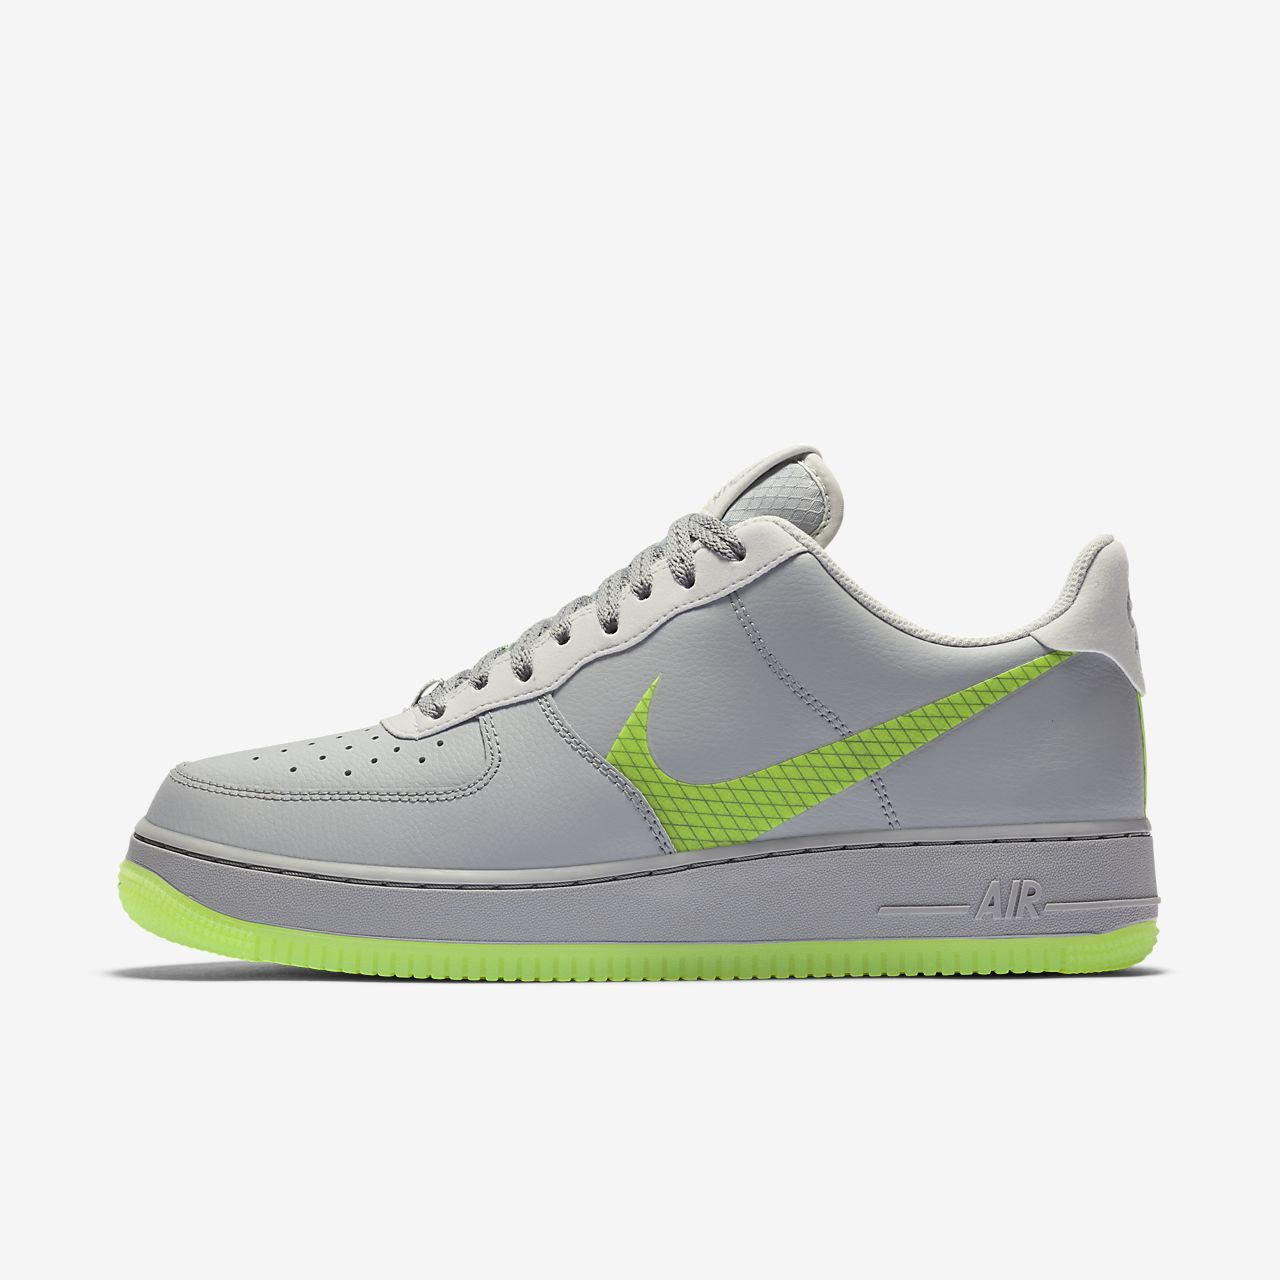 Grande gamme de Nike Air Force 1 Low '07 Homme Chaussures